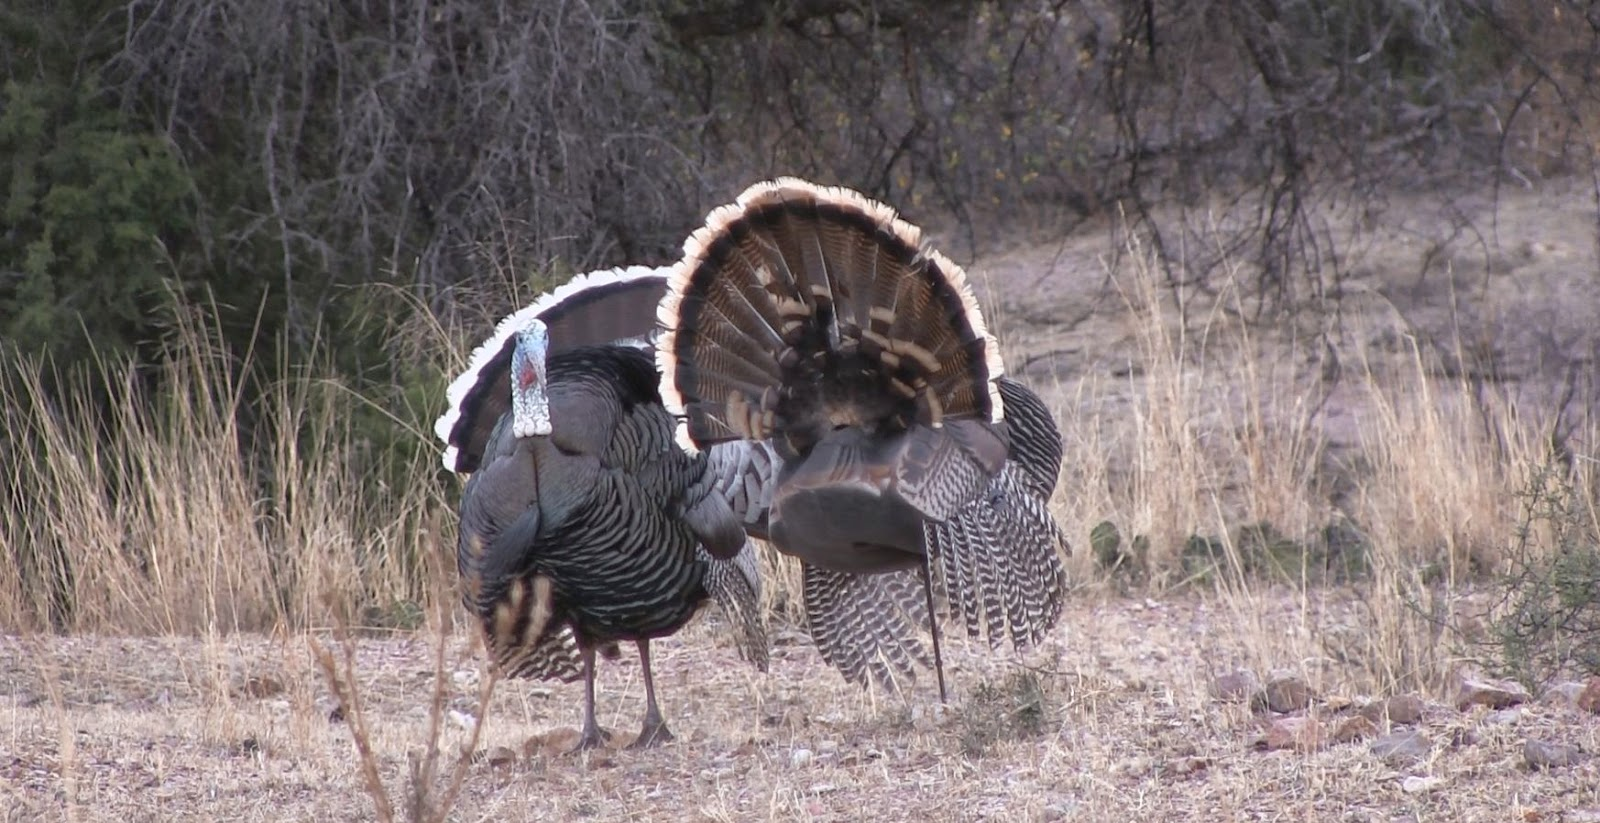 Full+Strut+Gould's+Turkey+Photos+in+Mexico+with+outfitter+Colburn+and+Scott+Outfitters+and+Jay+Scott+9.jpg